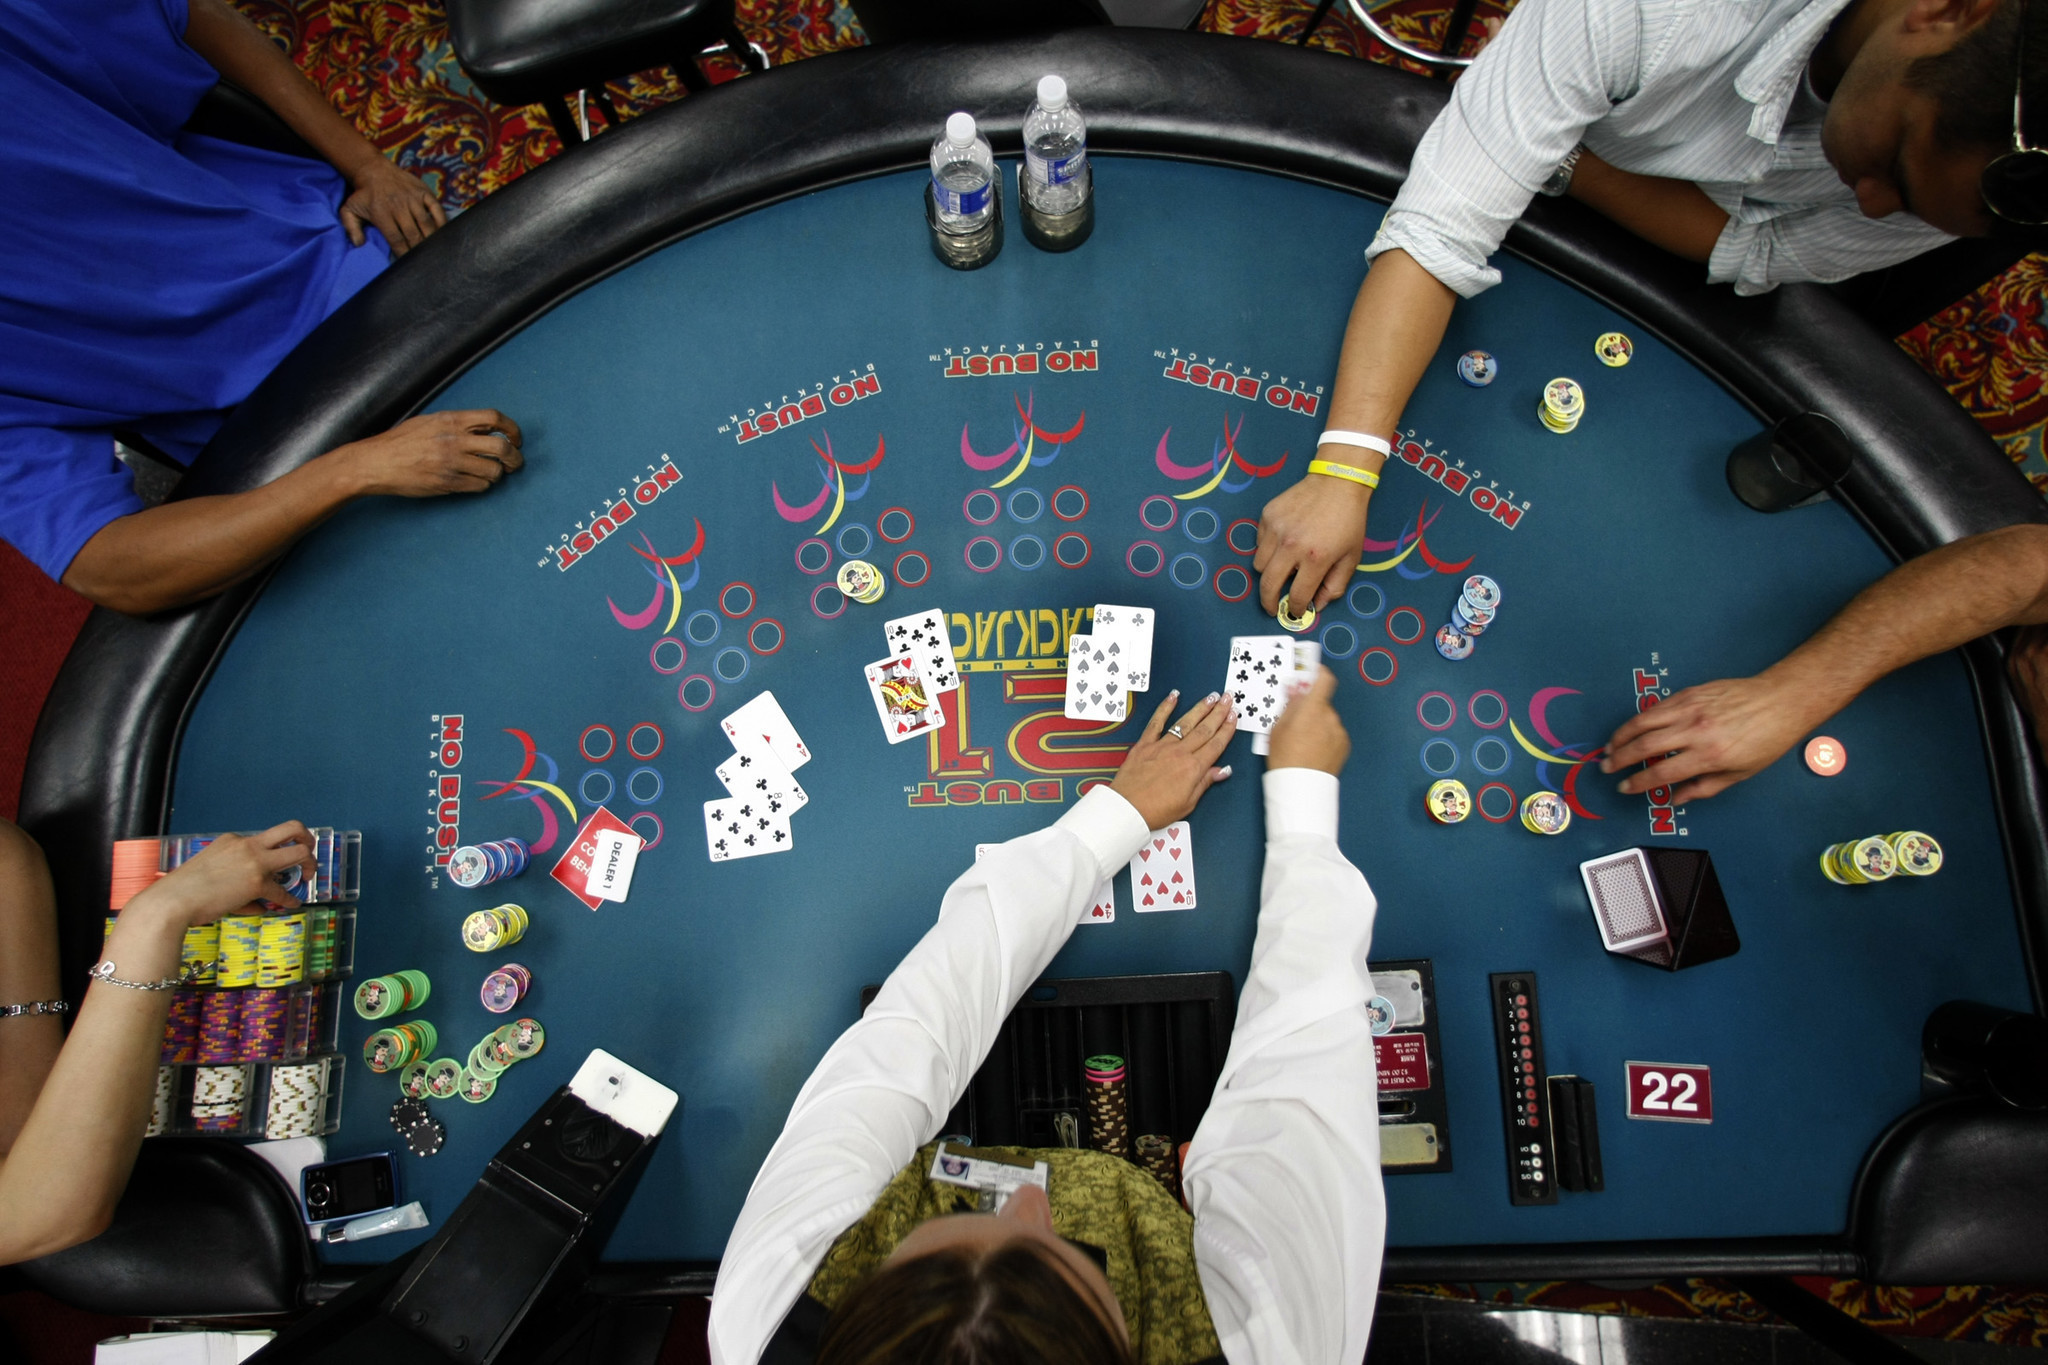 Texas holdem hands flush